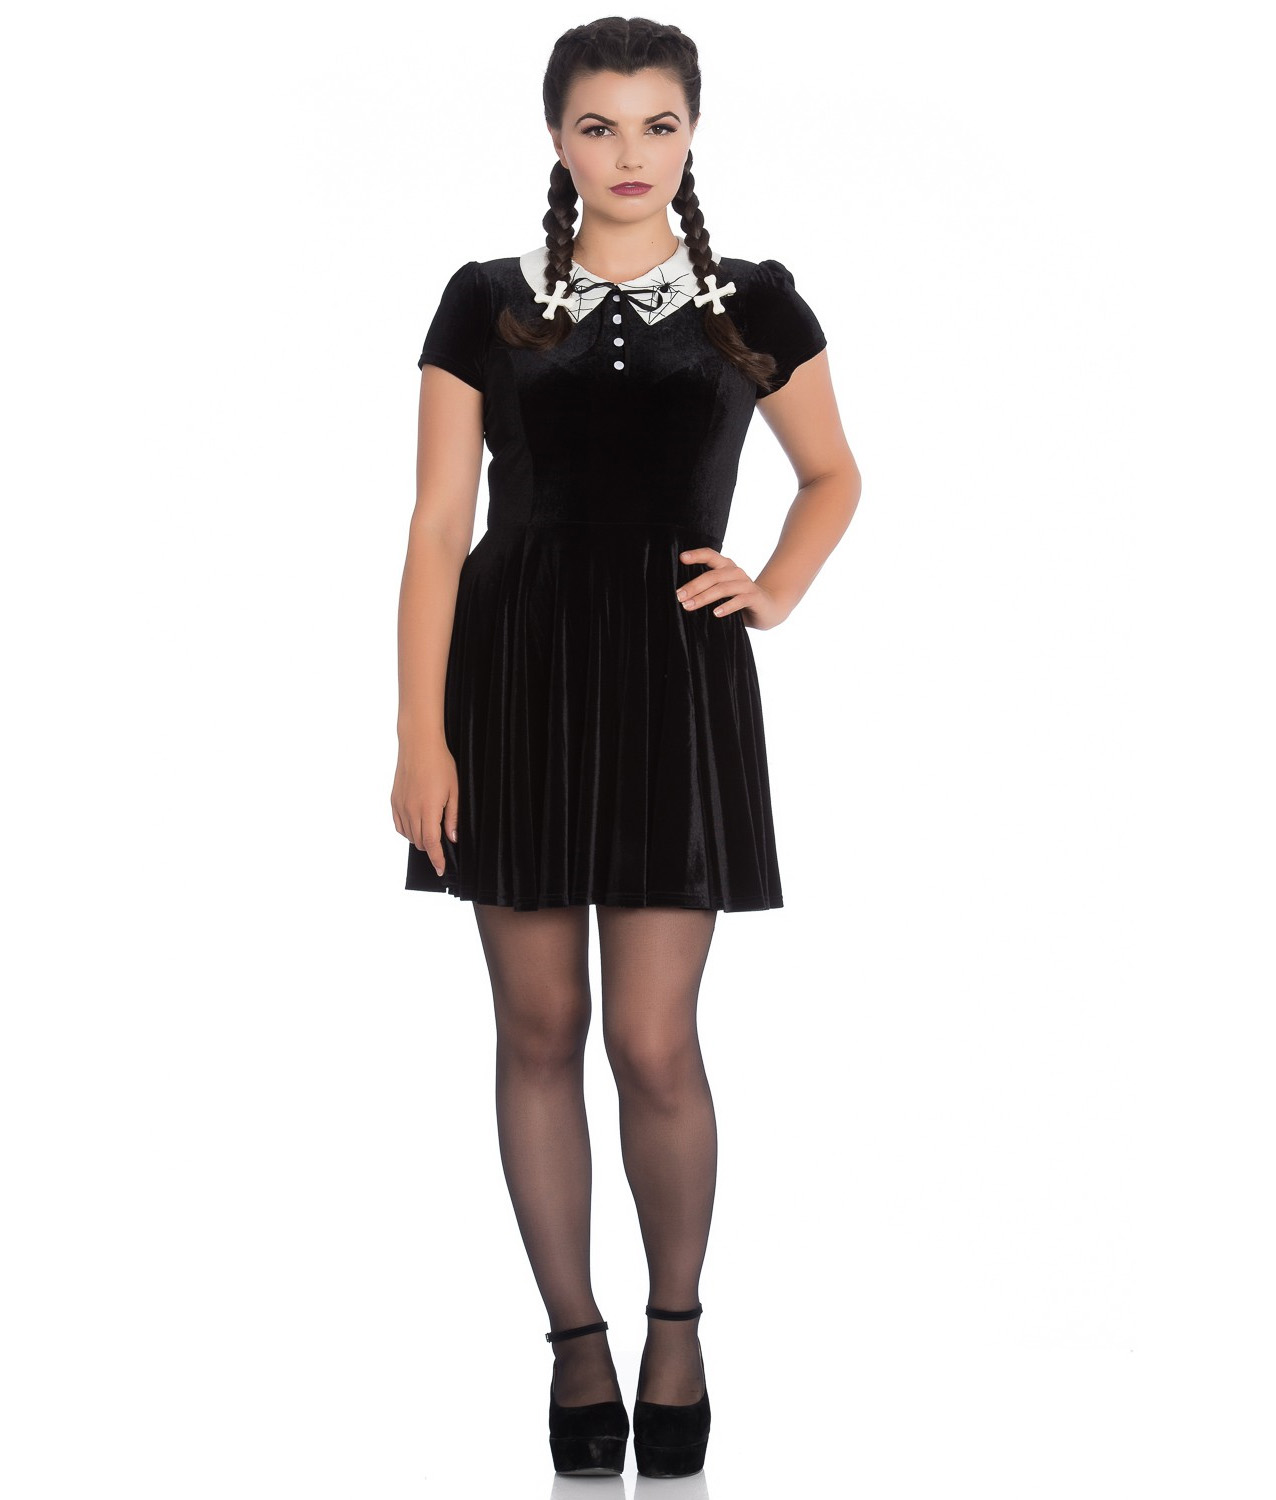 Hell-Bunny-Gothic-Mini-Skater-Dress-MISS-MUFFET-Spiders-Black-Velvet-All-Sizes thumbnail 19